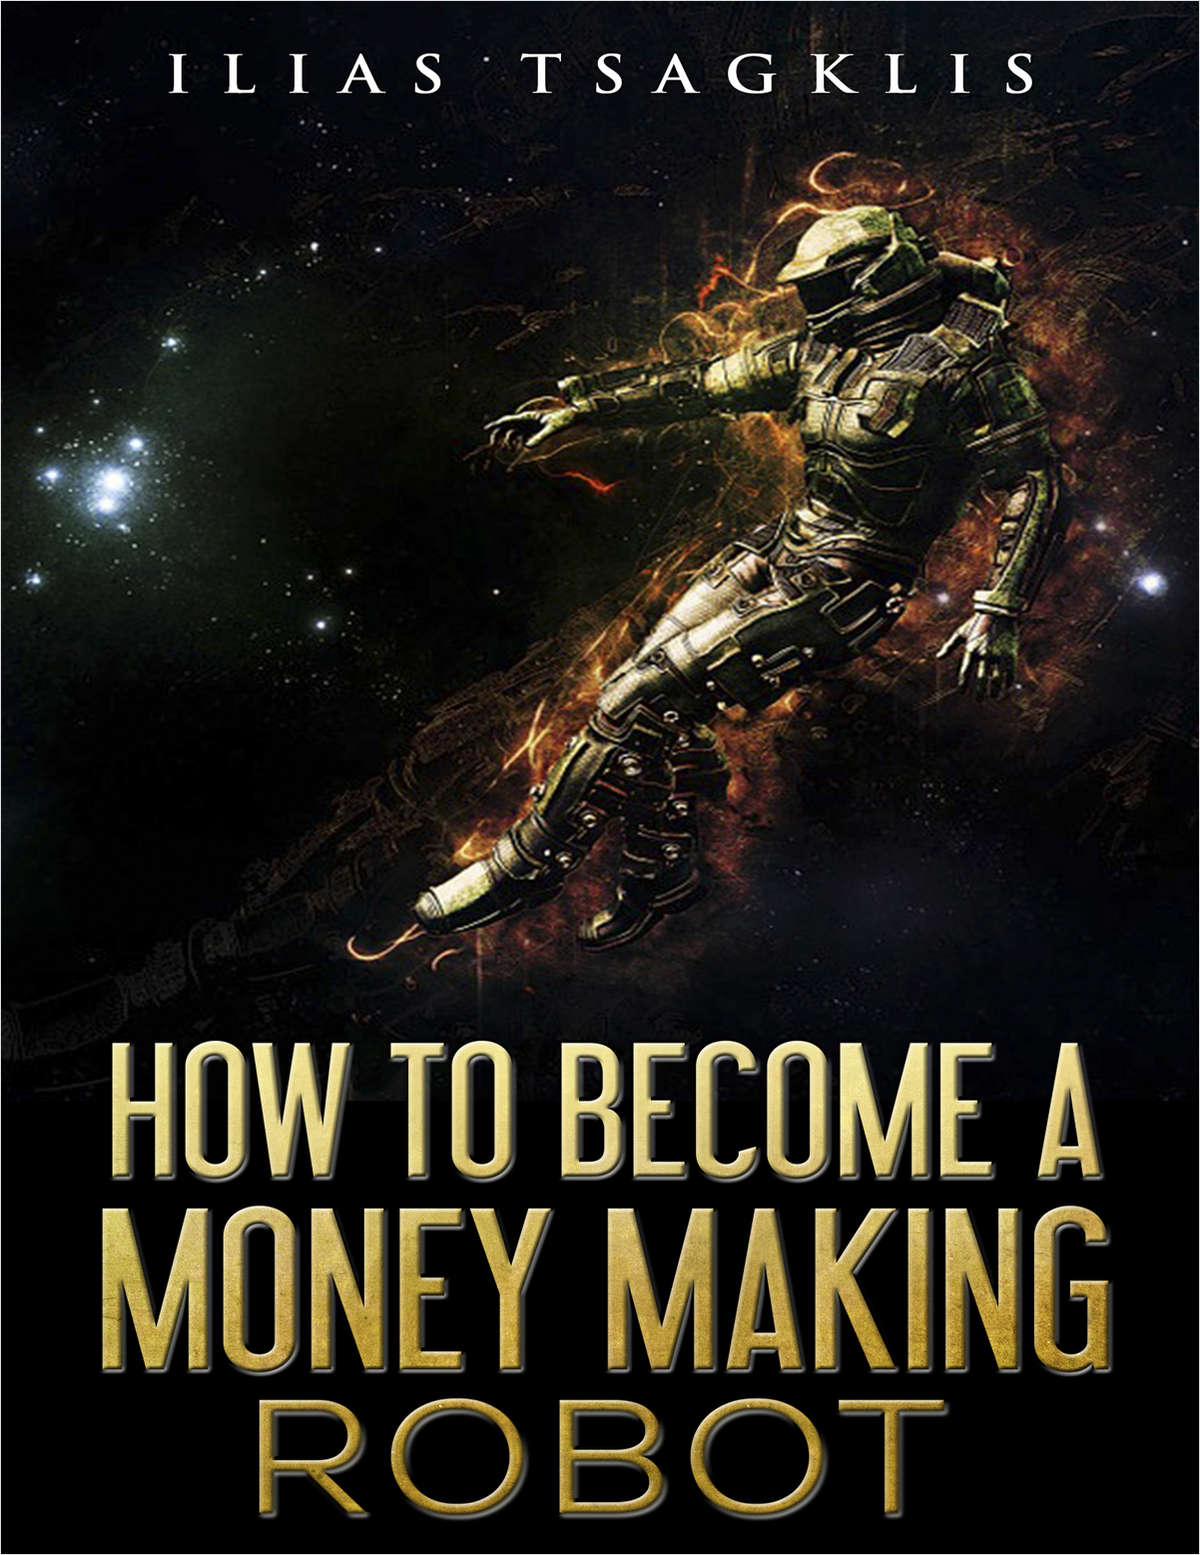 How to Become a Money Making Robot